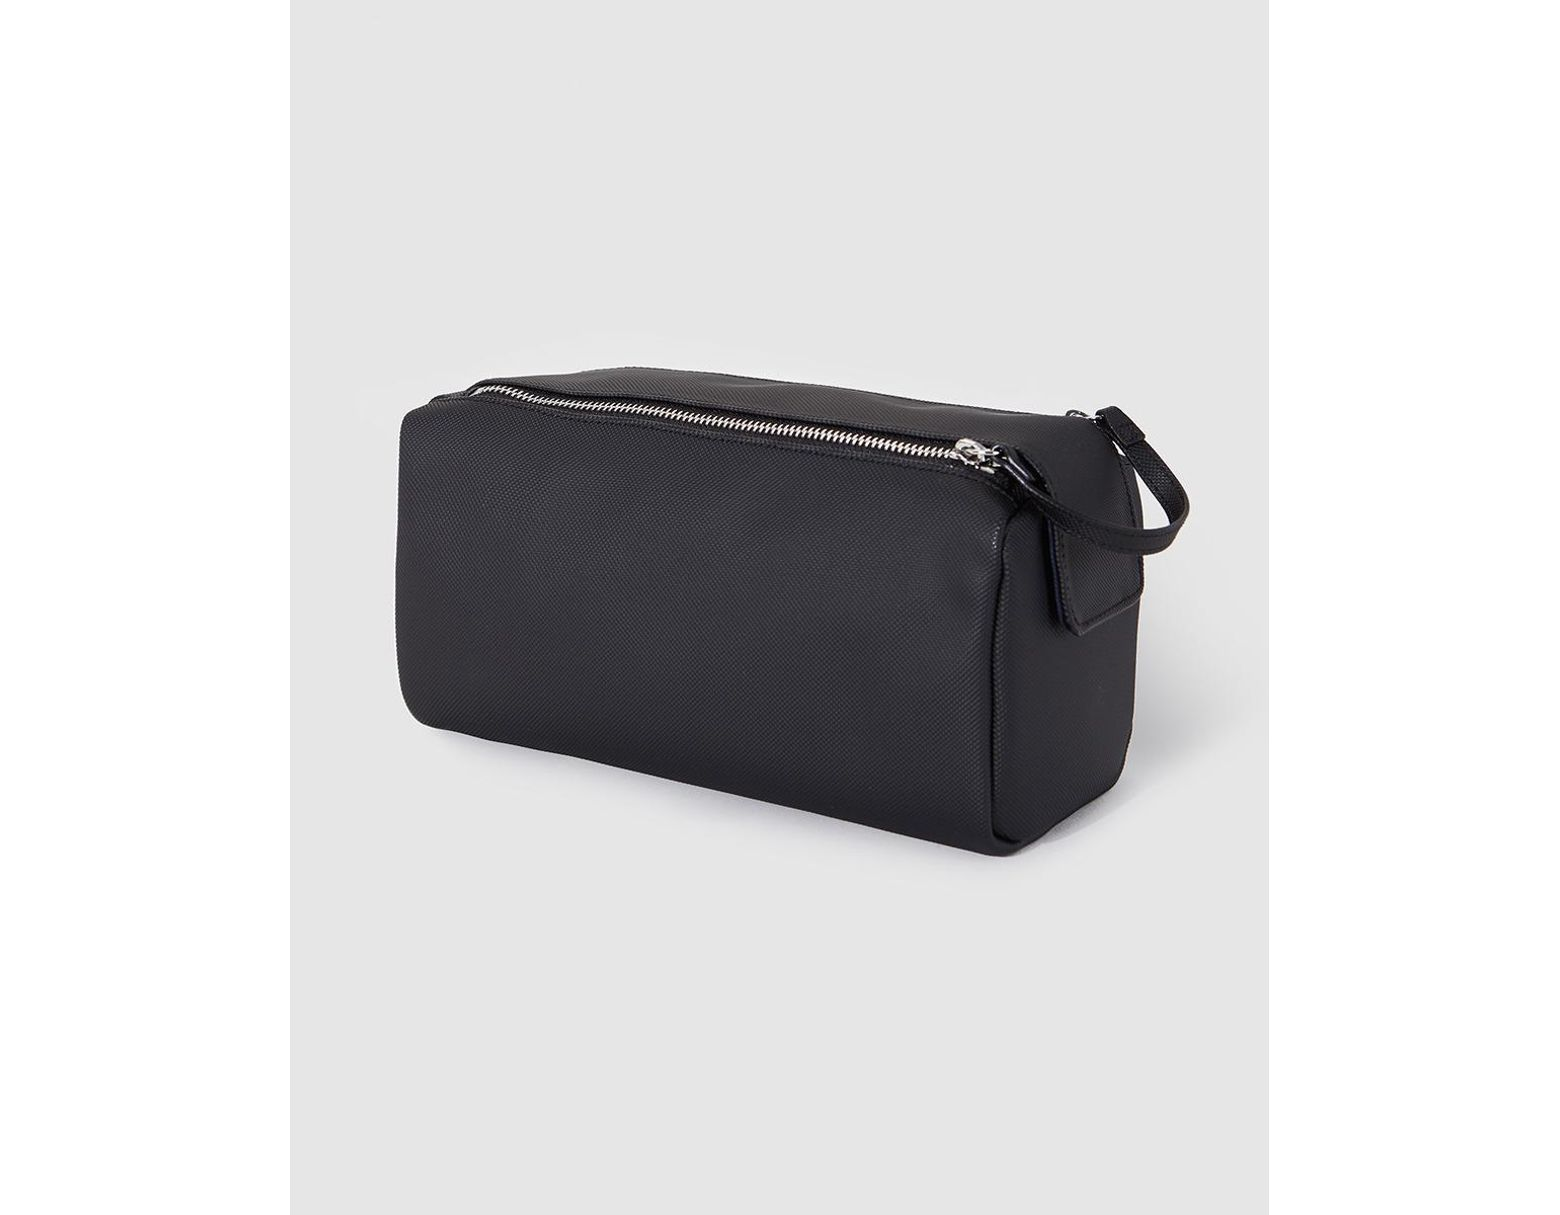 56bd752d199 Lacoste Black Toiletry Bag With Double Zip in Black for Men - Lyst